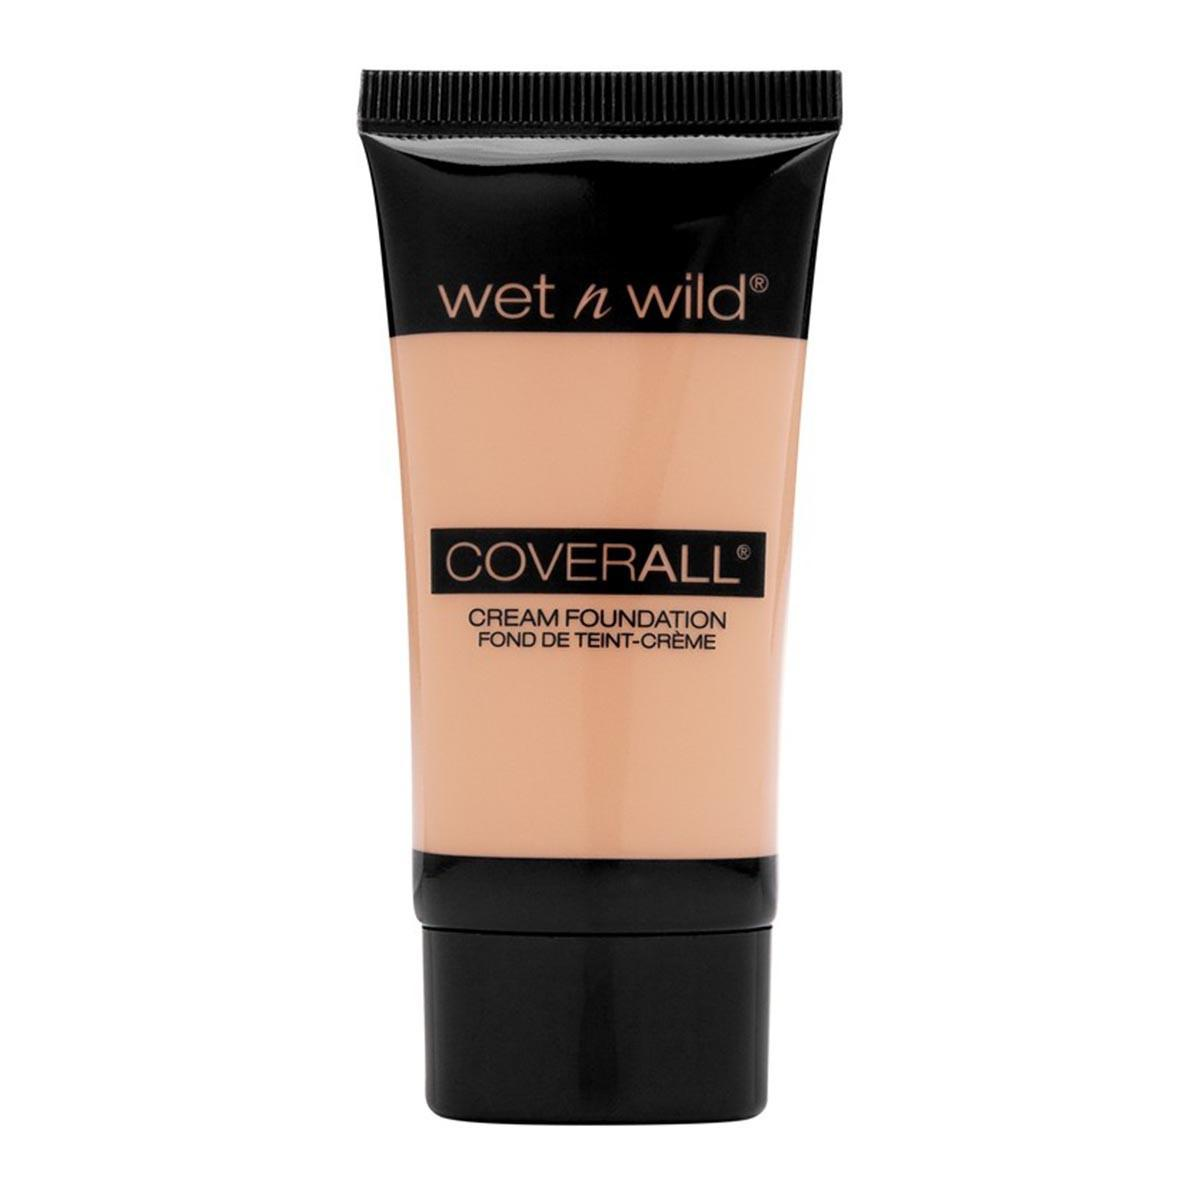 Wet n wild fragrances Coverall Cream Foundation Fond De Teintcream Light Medium